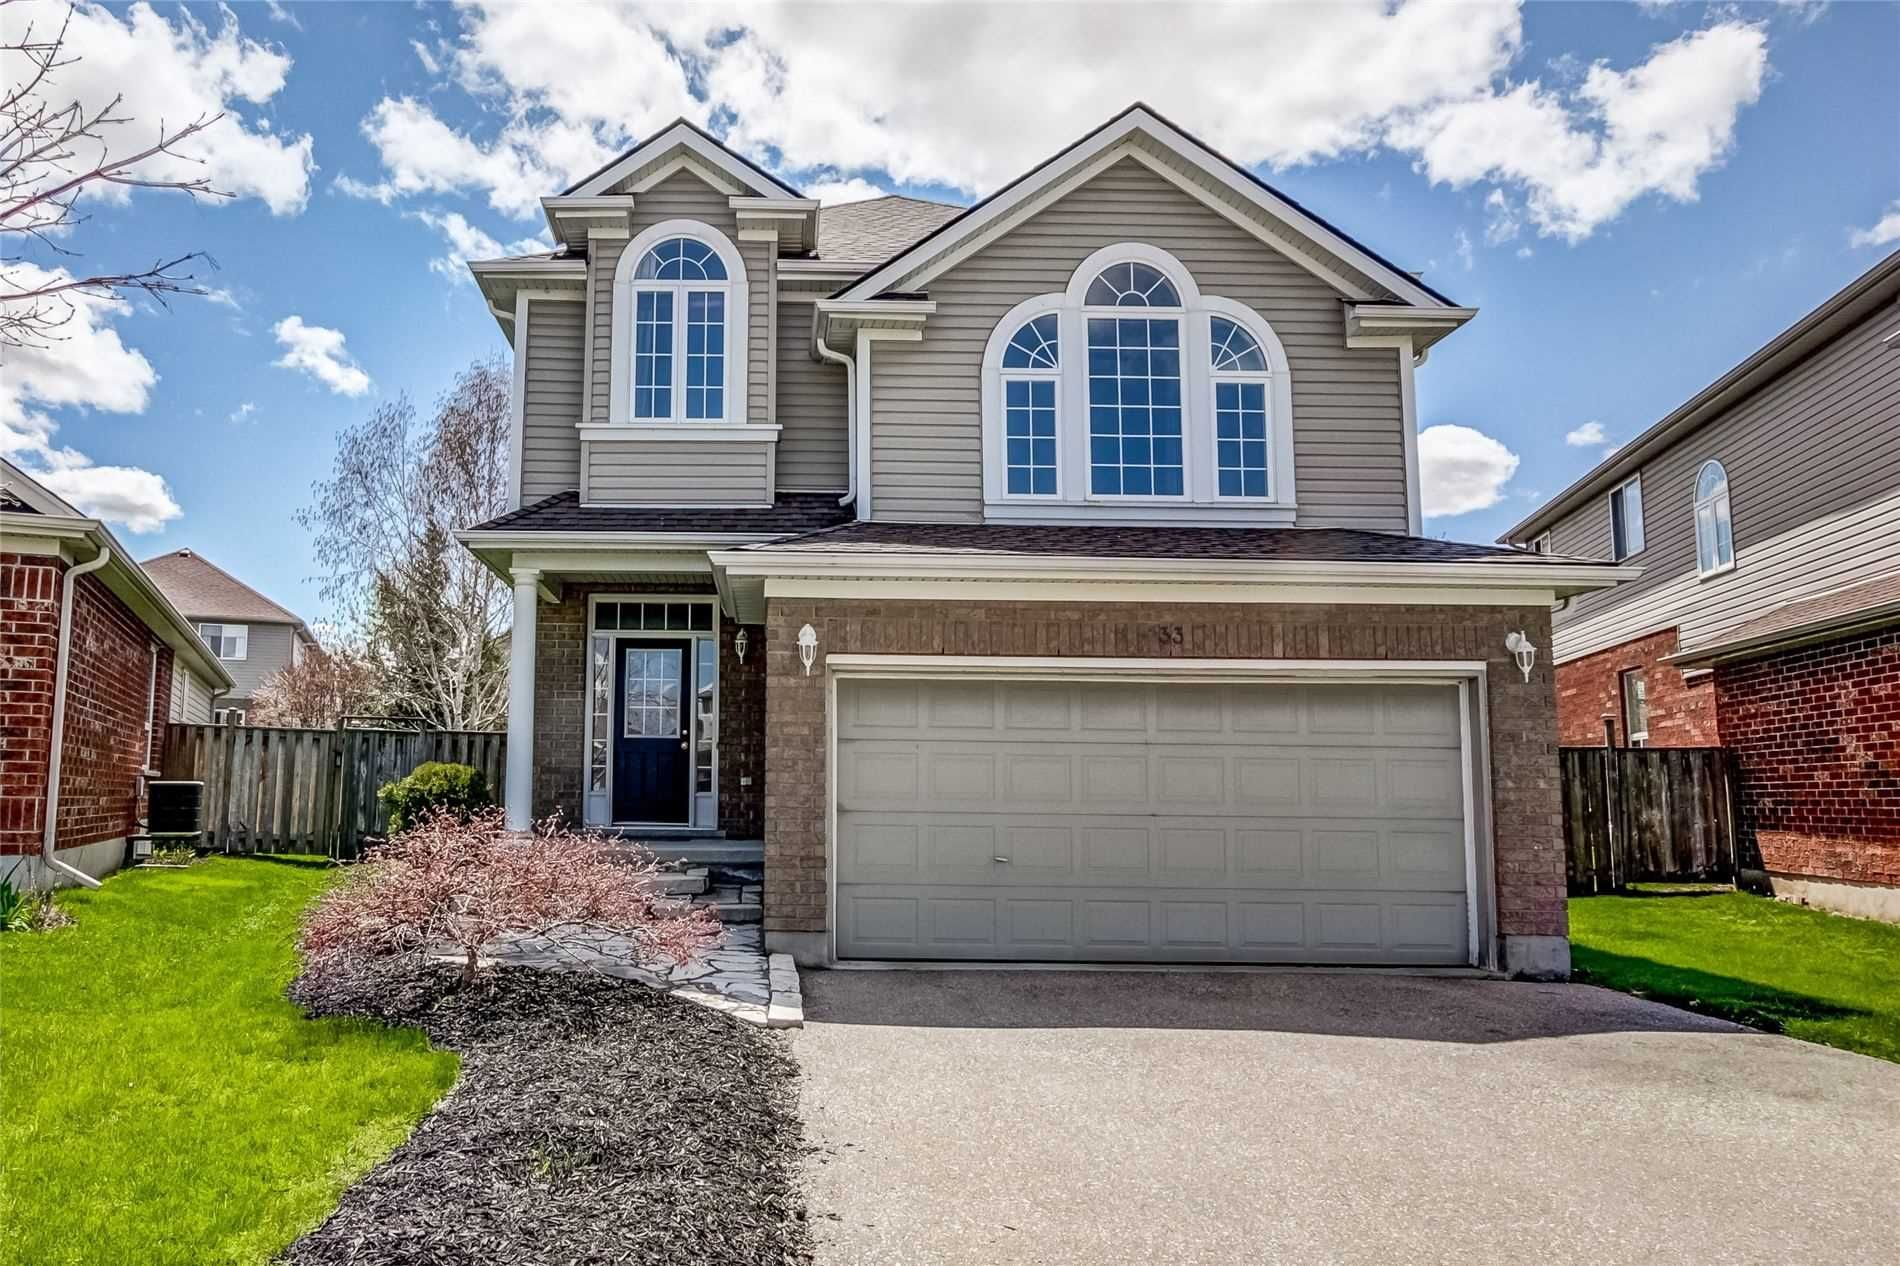 Main Photo: 33 Peer Drive in Guelph: Kortright Hills House (2-Storey) for sale : MLS®# X5233146